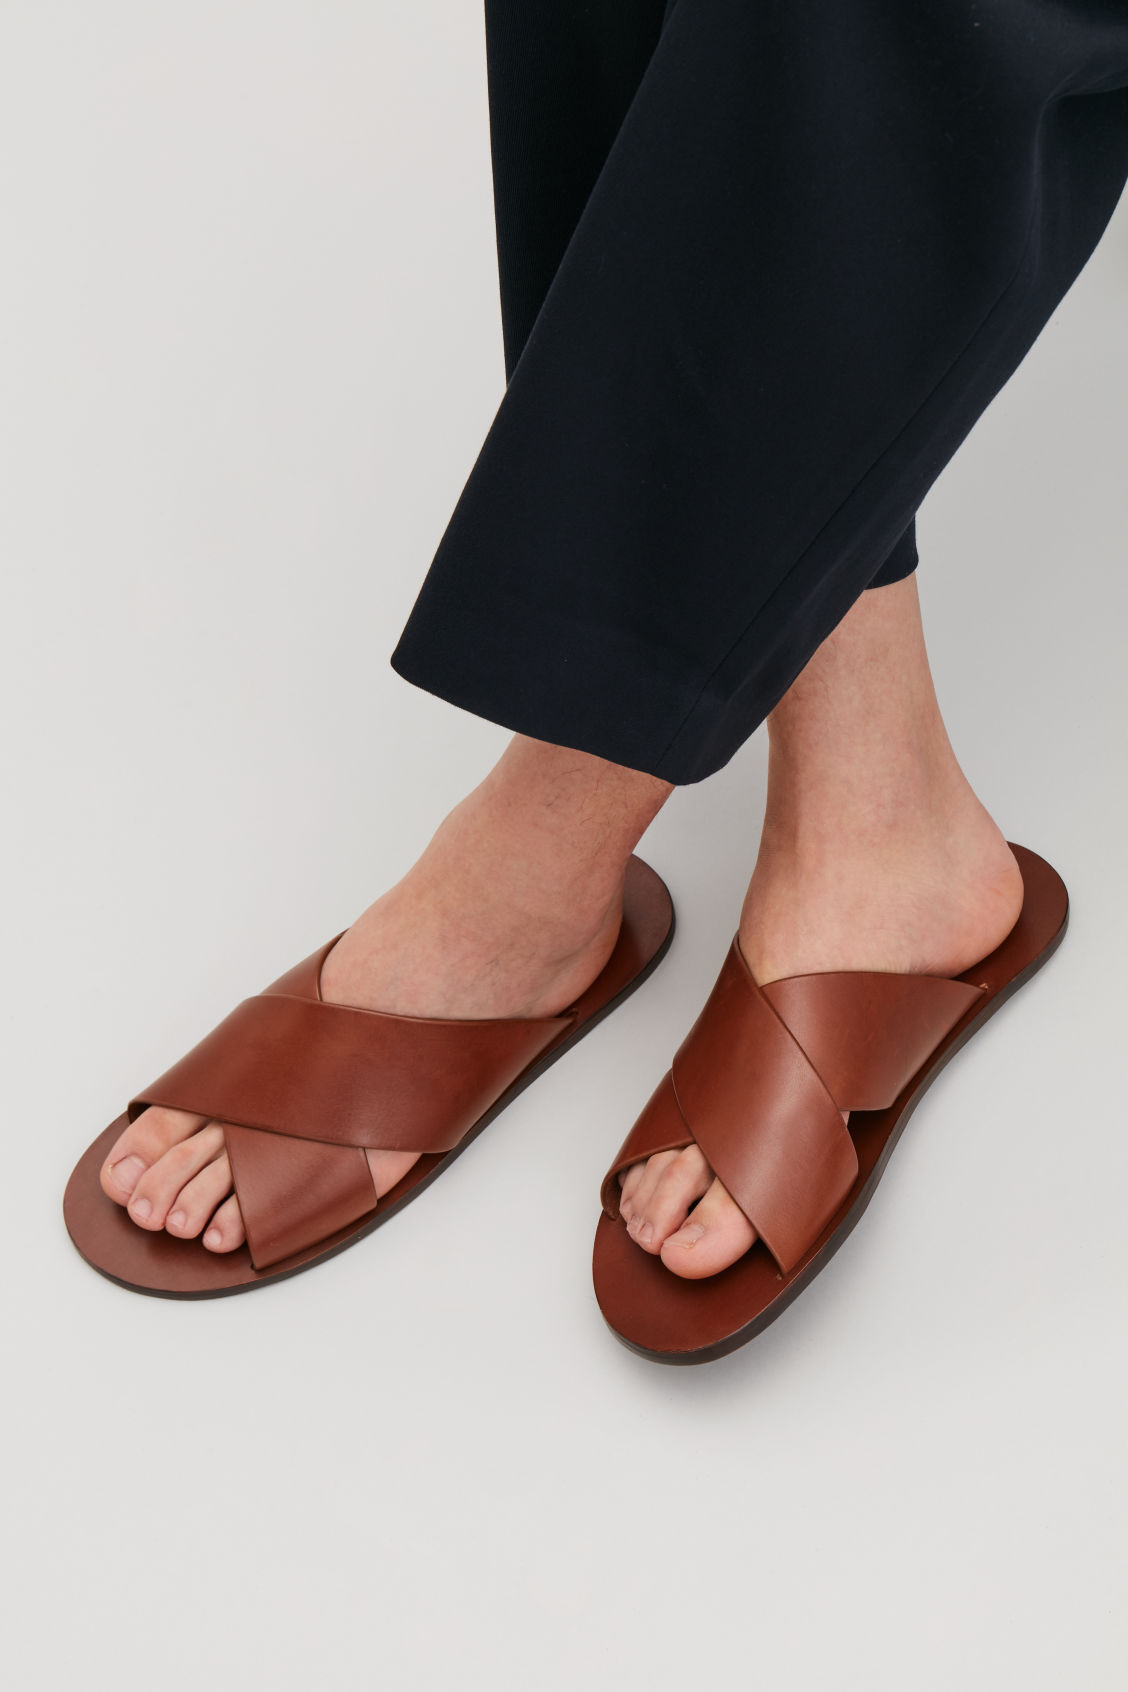 crossover sandals Discount Manchester Great Sale Ek0pO0W